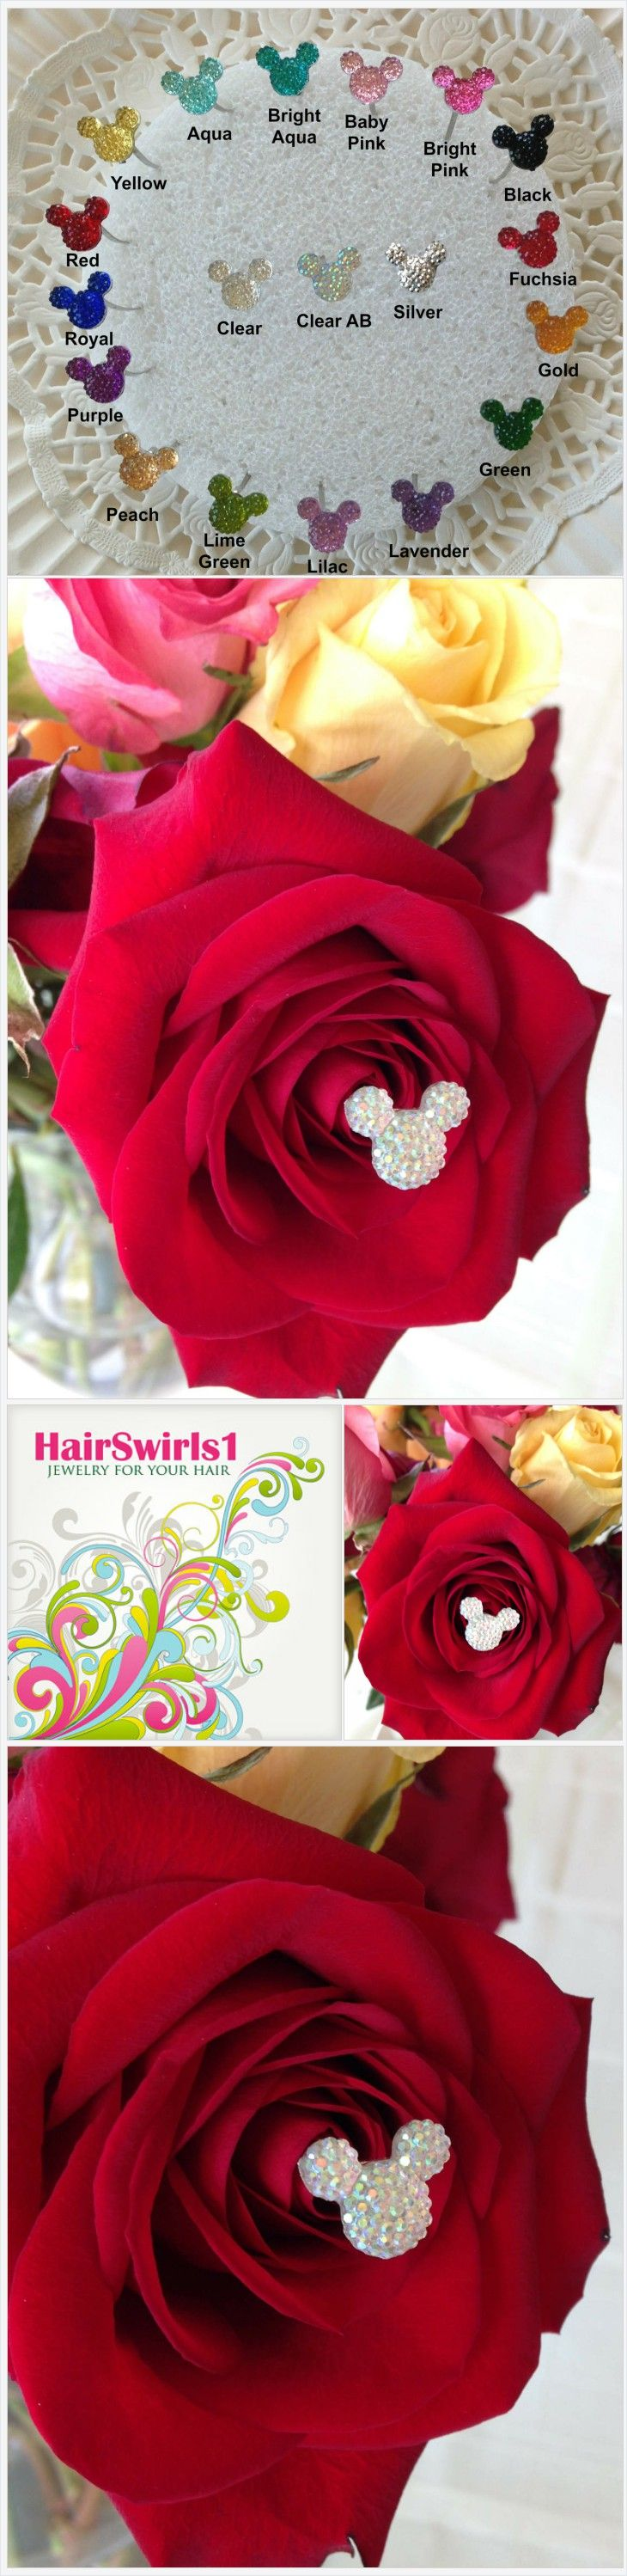 6 Hidden Mickey Disney Inspired Mouse Ears in your Bouquets for Themed Wedding Flower Picks Floral Pins Flower Posts Clear AB Bridal Flowers https://www.hairswirls.com/listing/506346684/6-hidden-mickey-disney-inspired-mouse